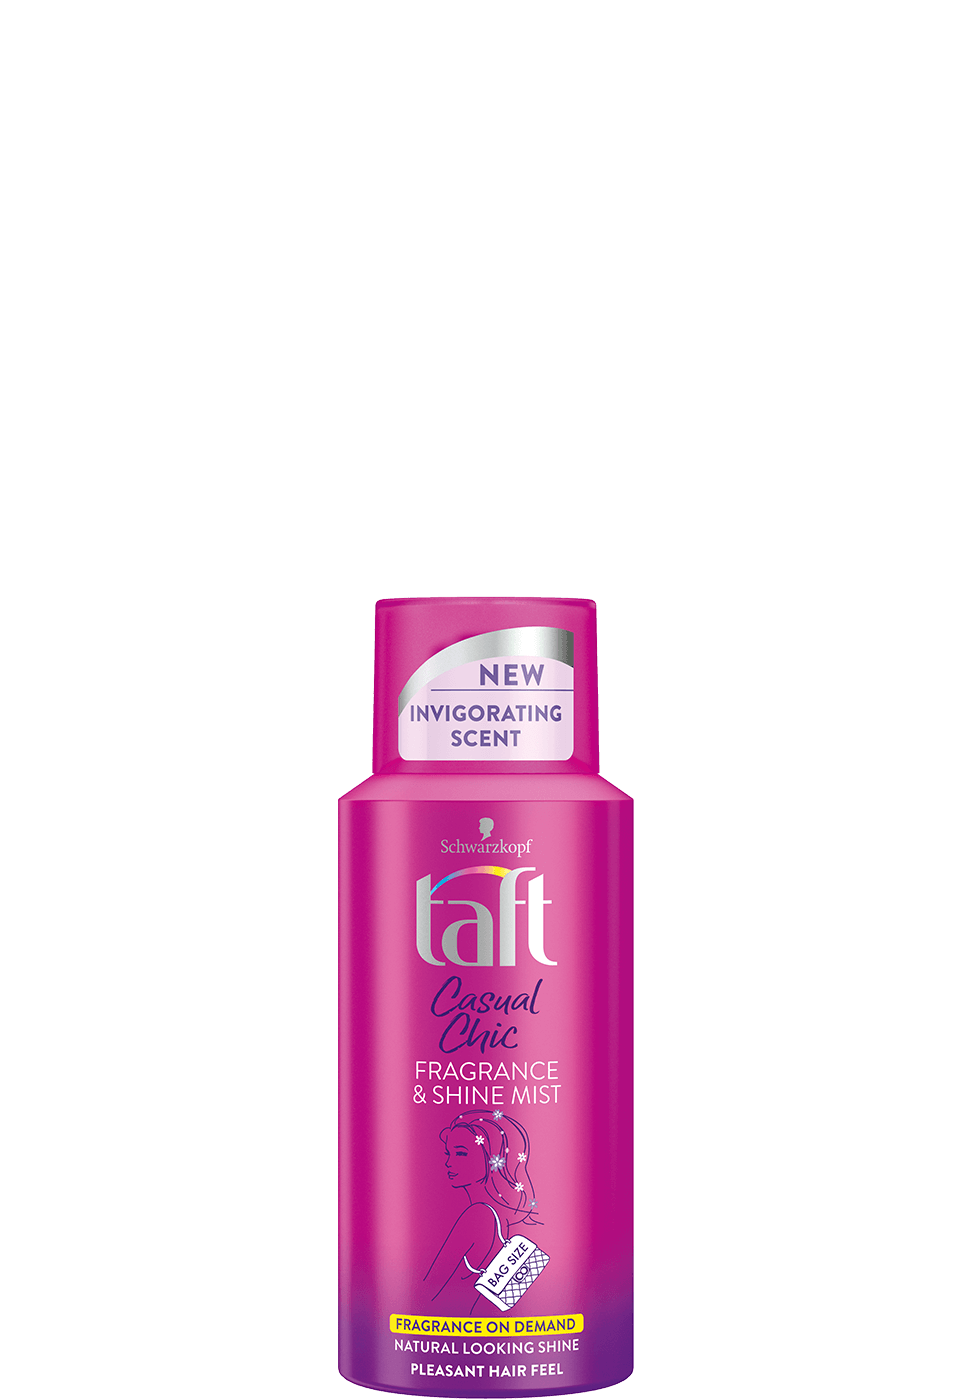 taft_com_casual_chic_fragrance_shine_mist_970x1400